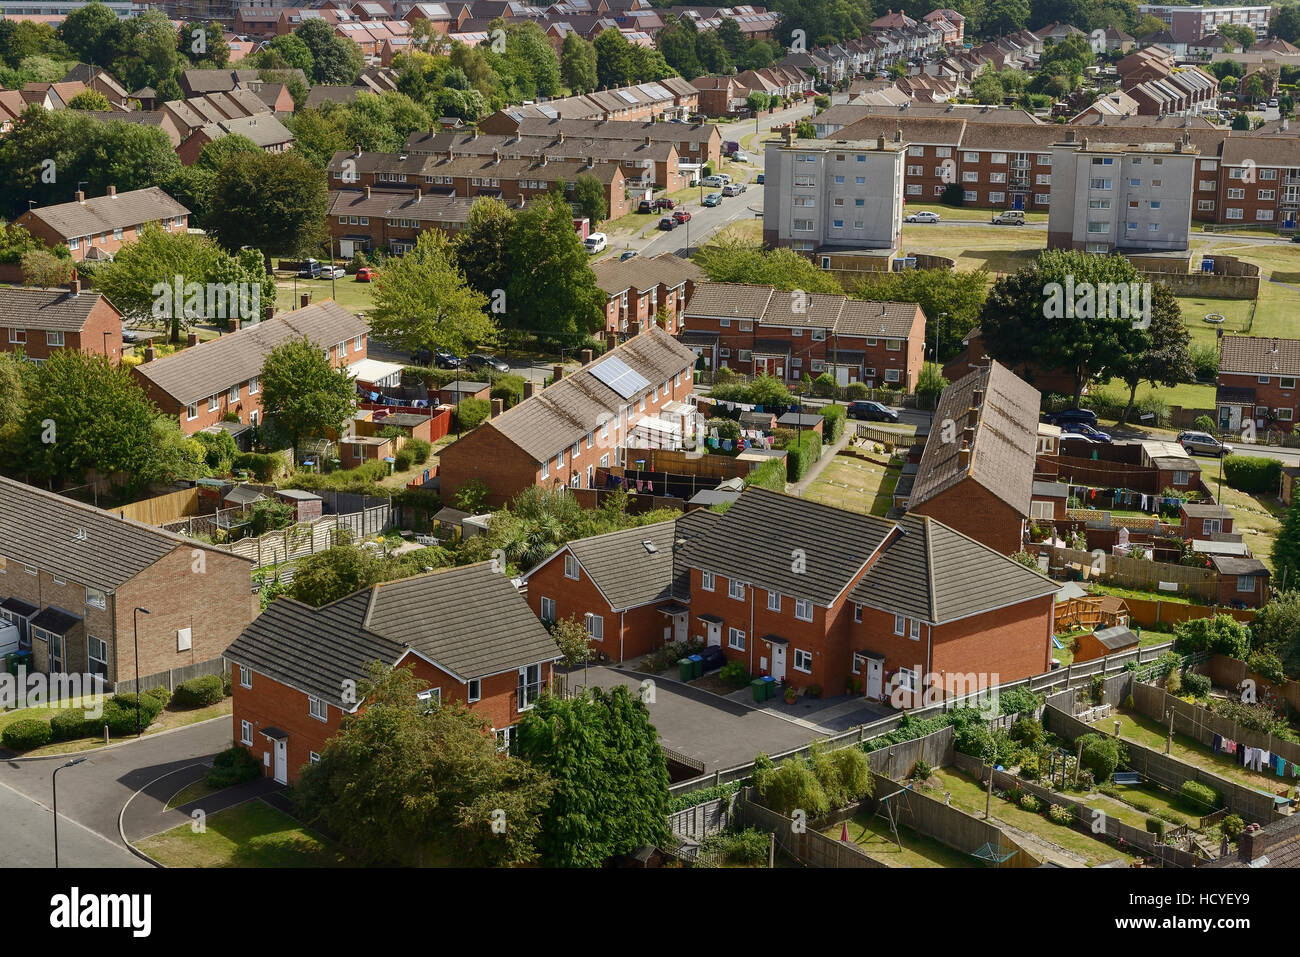 Social housing on the outskirts of Southampton UK - Stock Image